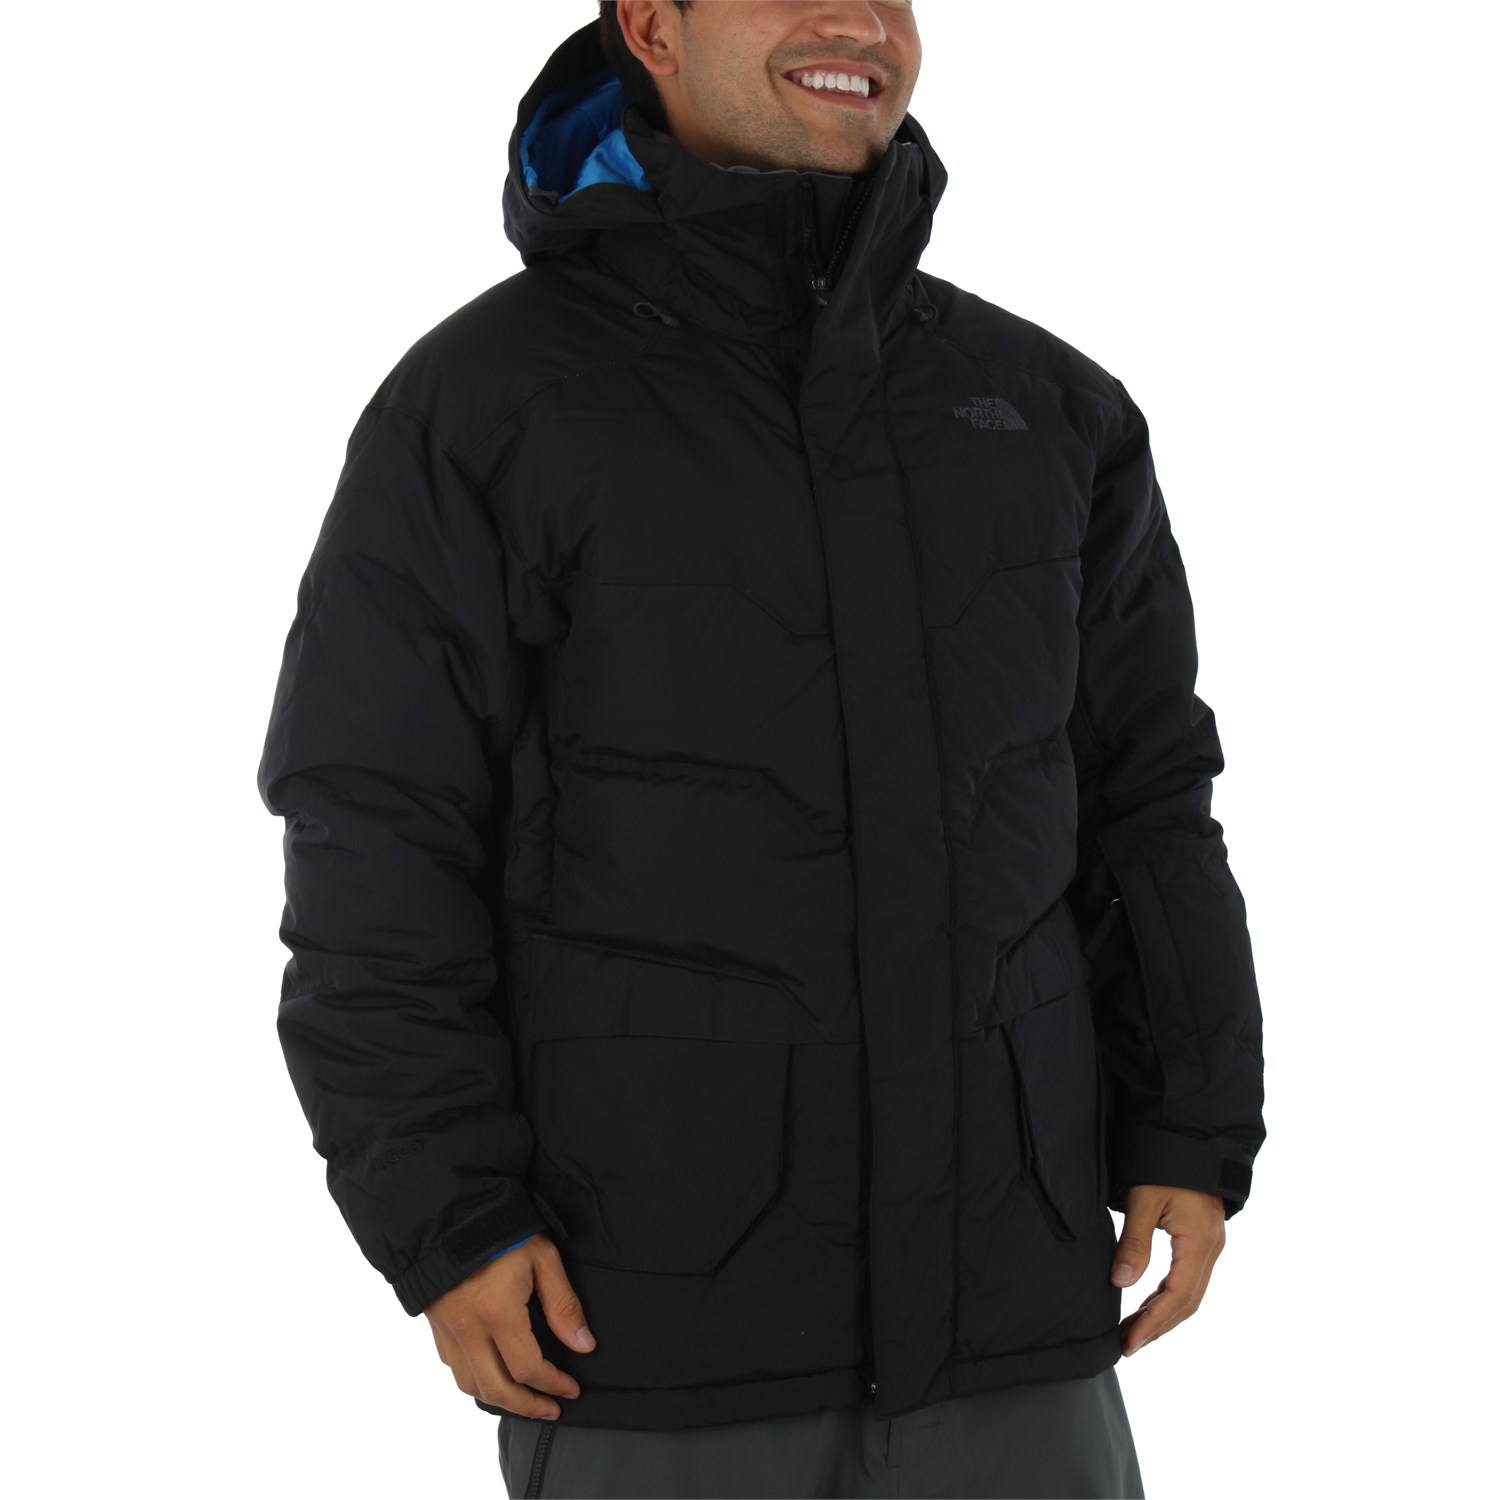 North Face Down Jacket Northface Discount North Face Down Coats France